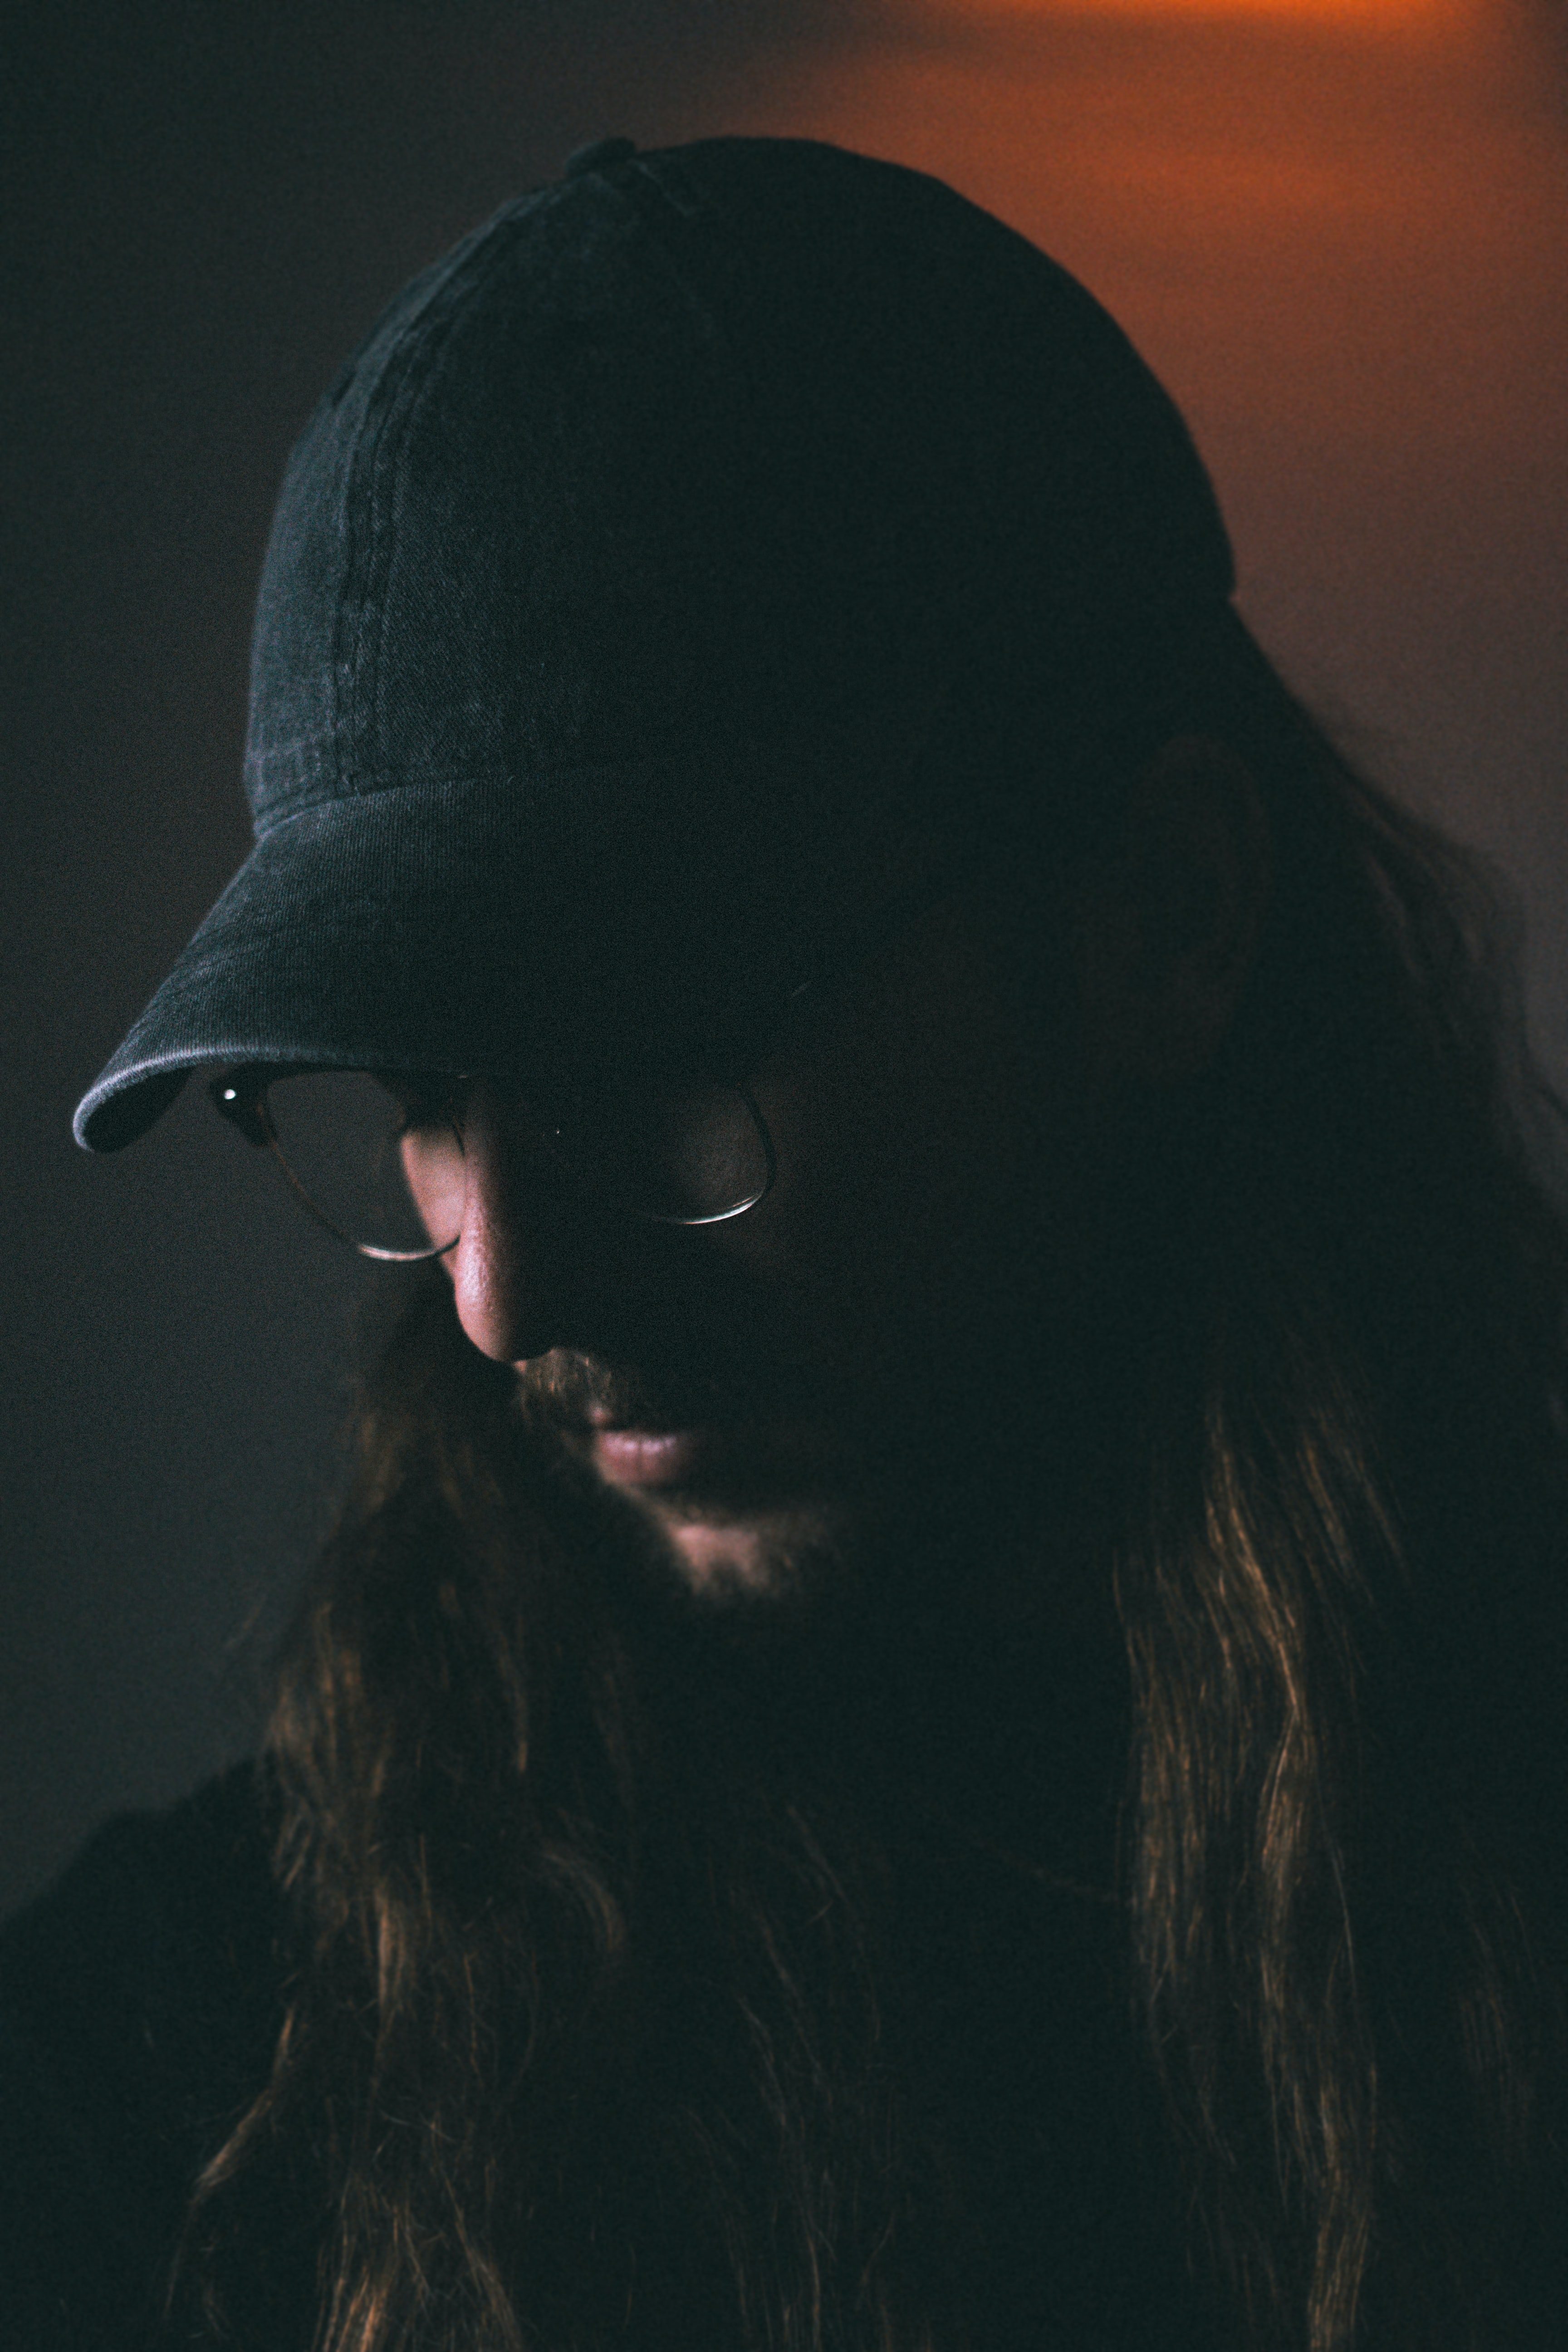 man wearing black fitted cap looking down closeup photography